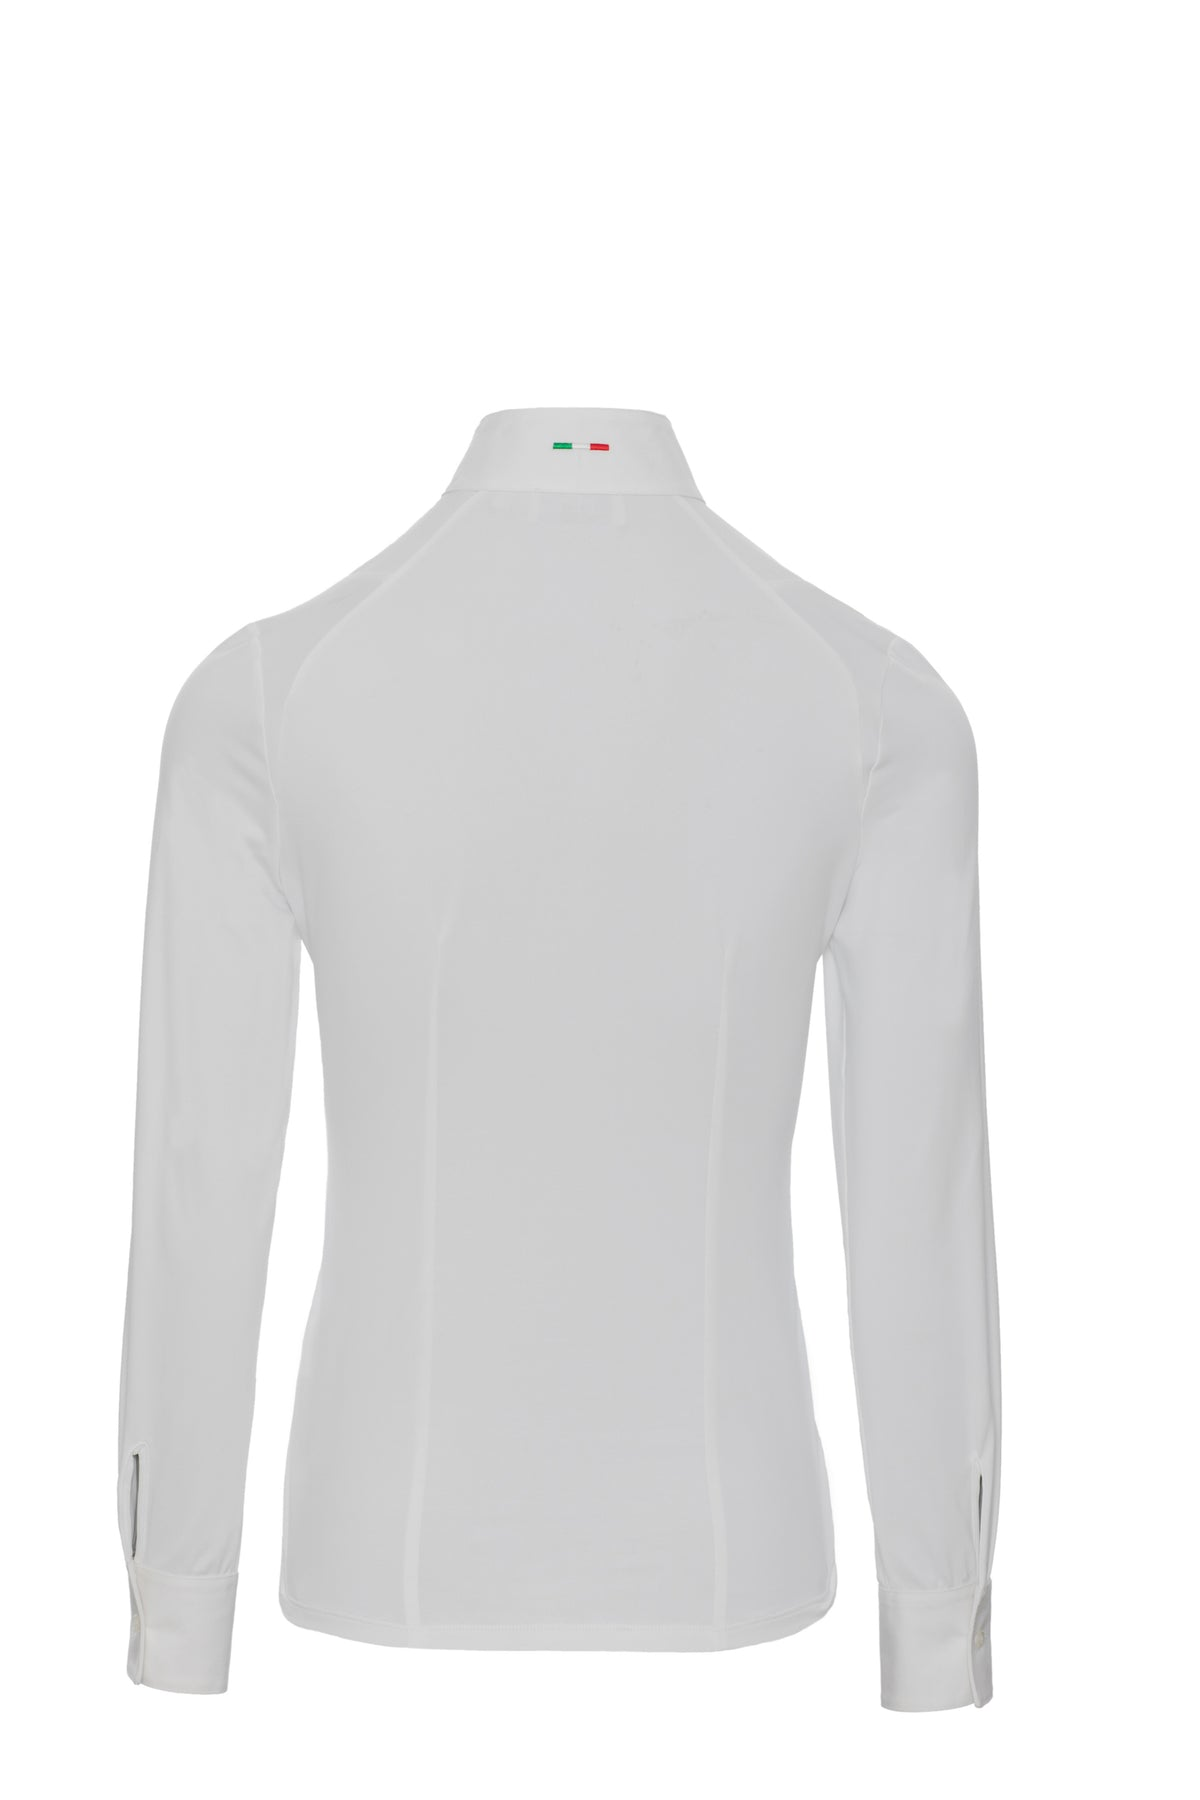 Alessandro Albanese Porto Ladies Competition Shirt